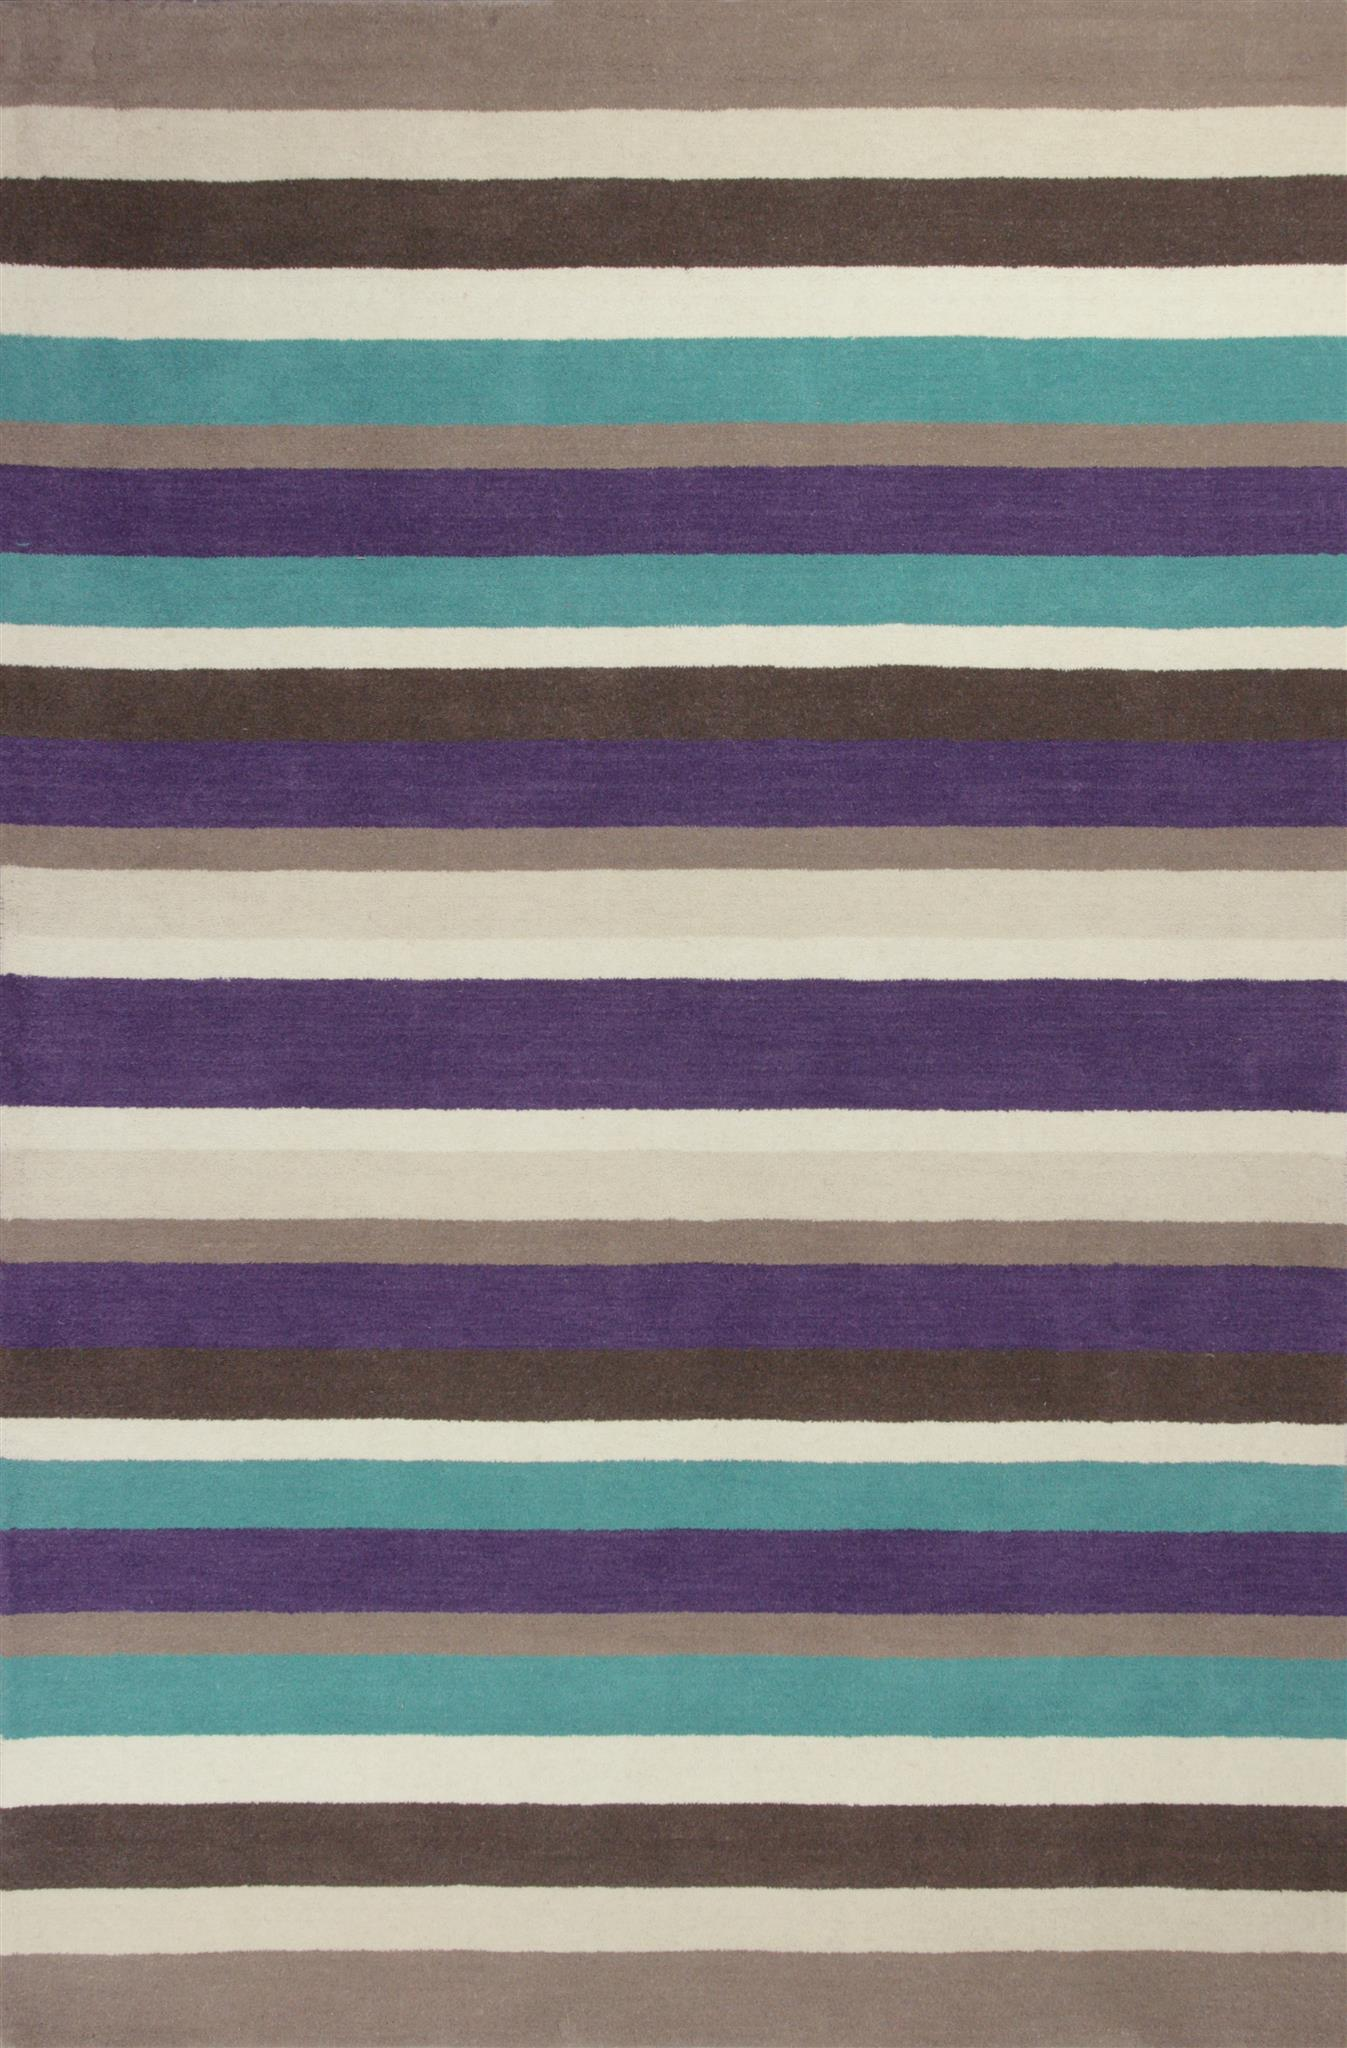 Loft 2068 Teal/Plum Horizon